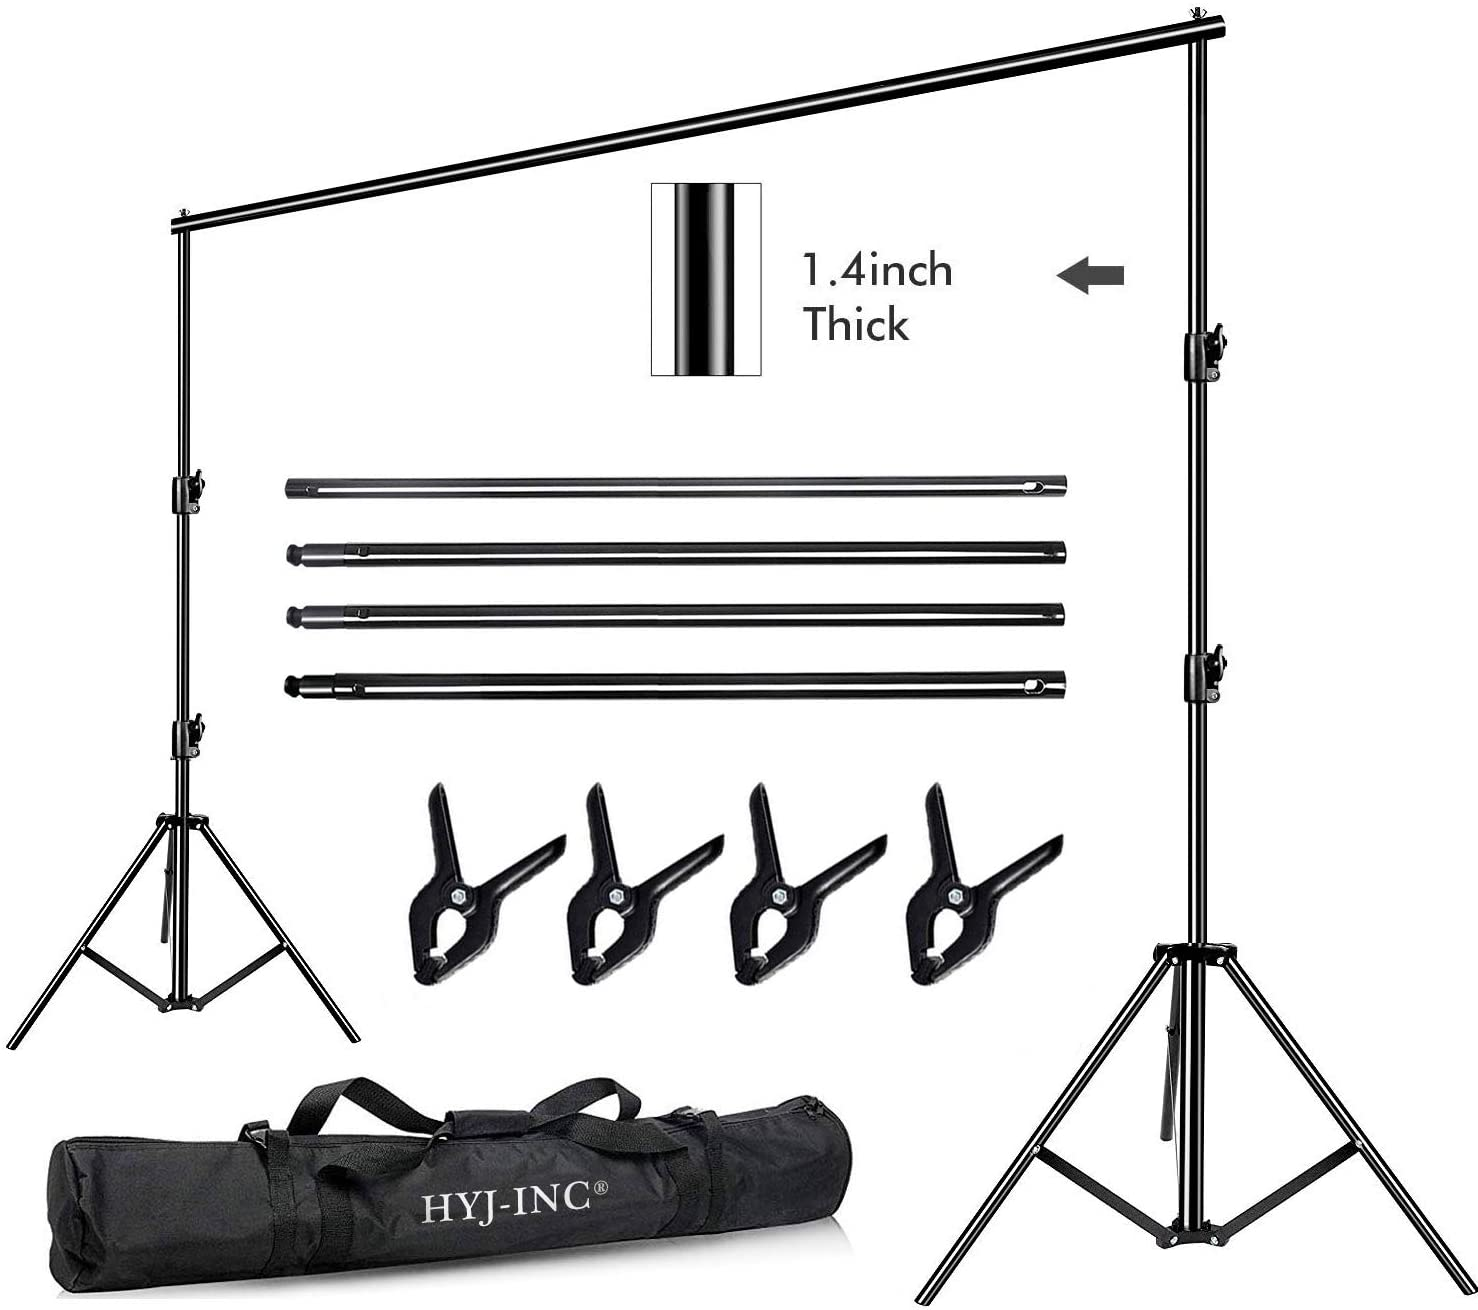 HYJ-INC 12ft x 10ft Photo Video Studio Heavy Duty Adjustable Photography Muslin Backdrop Stand Background Support System Kit with Carry Bag 4 Spring Clamps